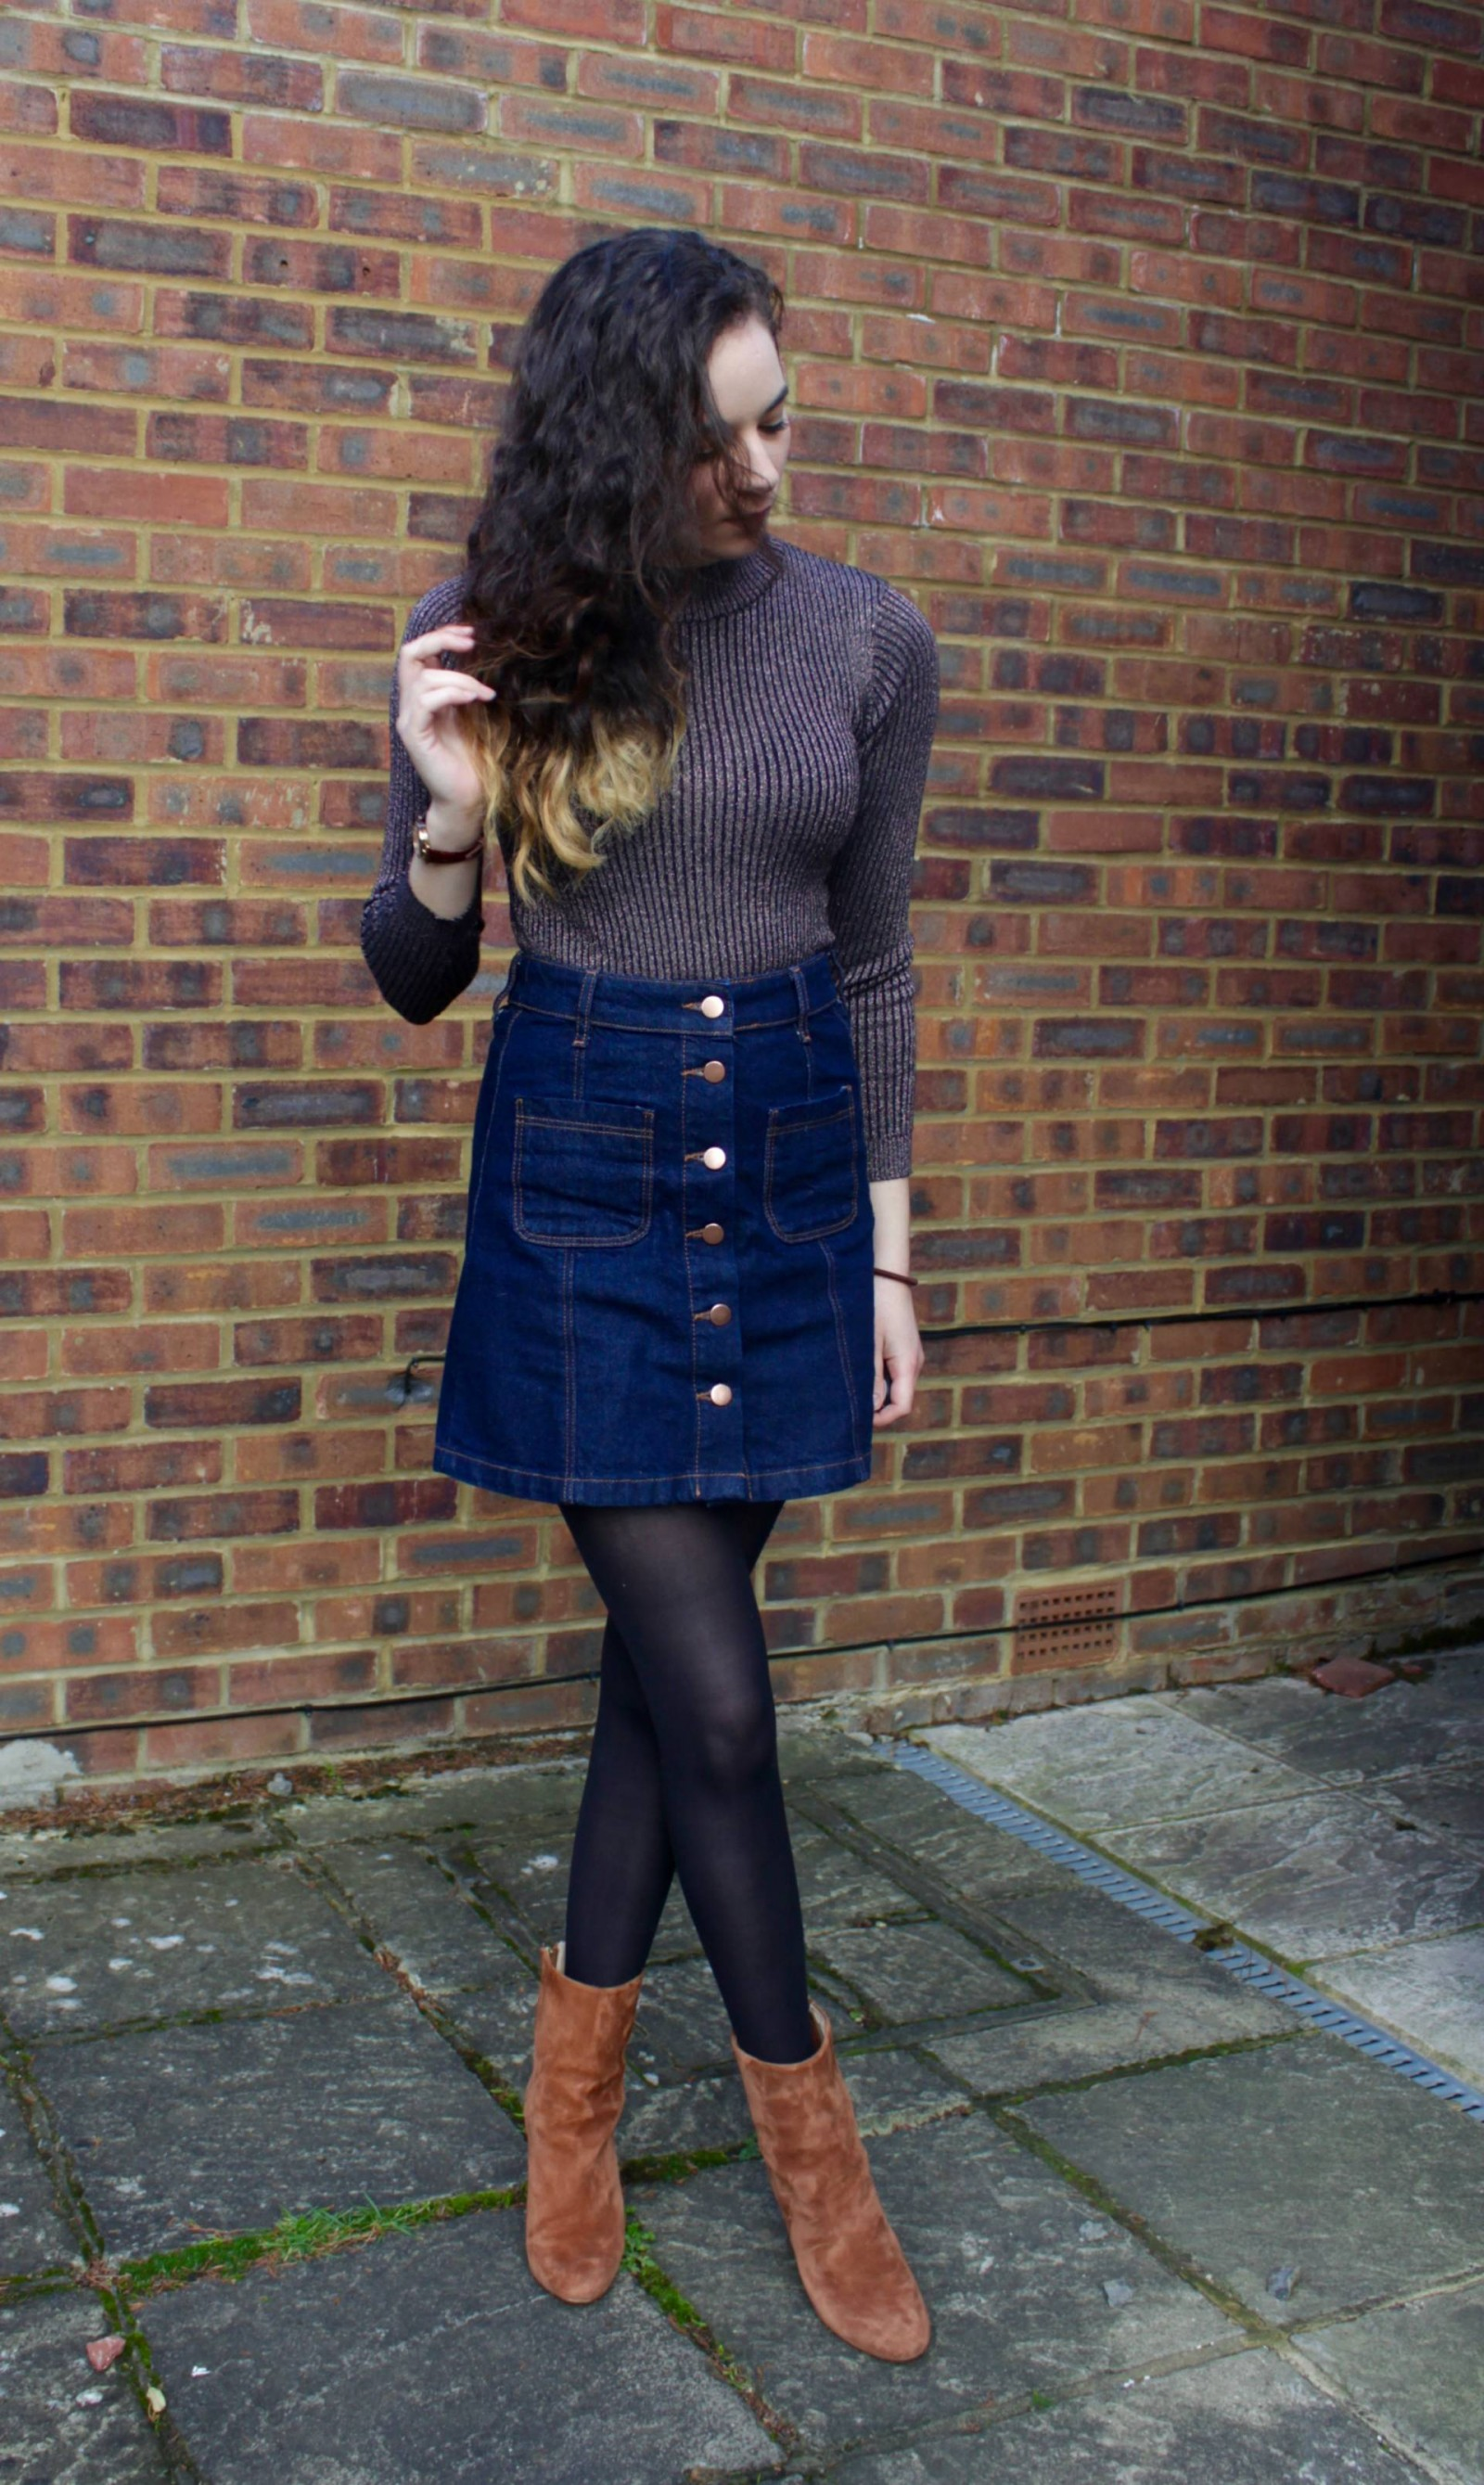 Denim skirt outfit with woman looking down